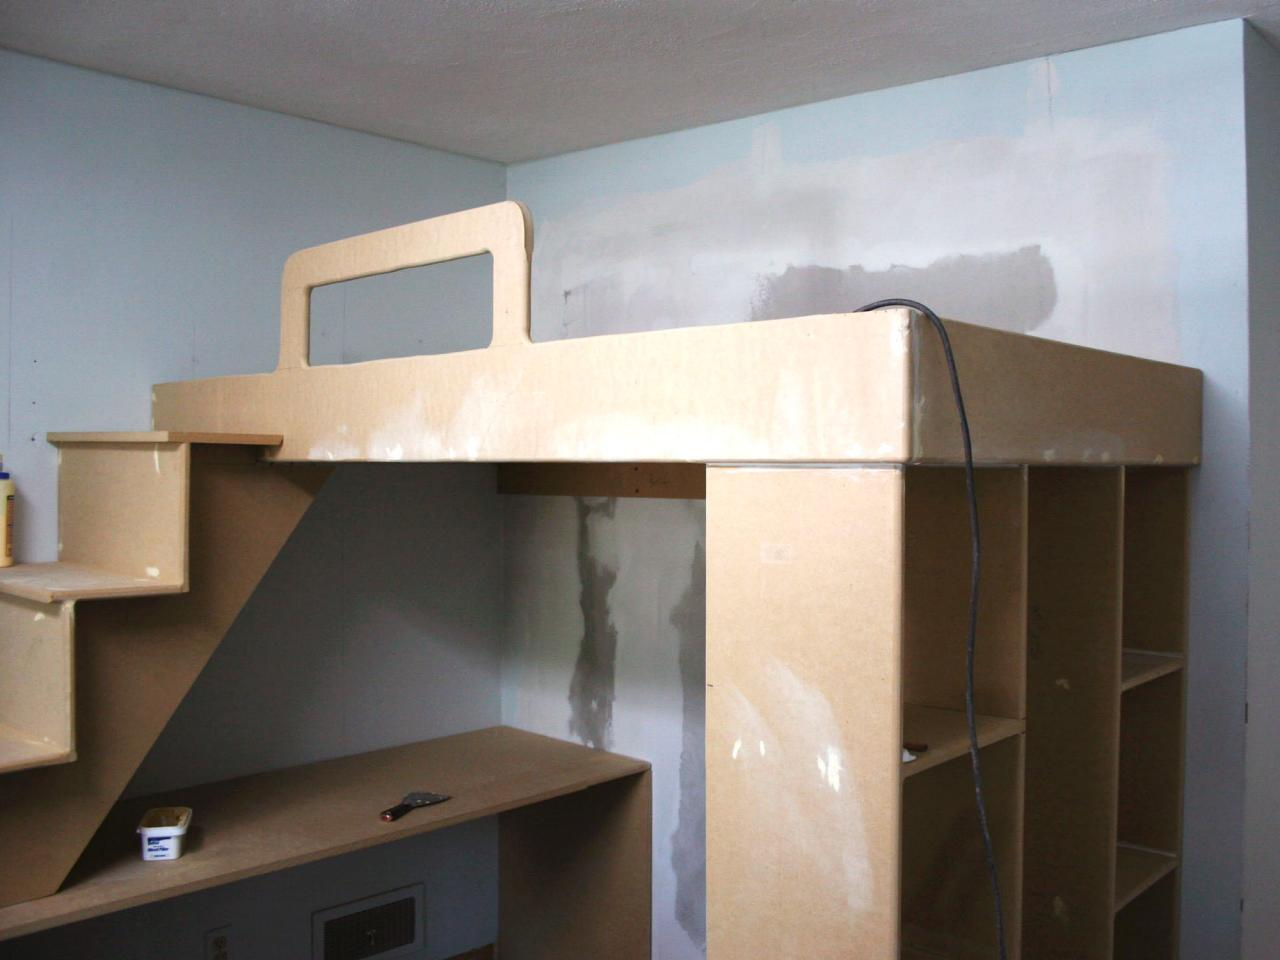 How to build a loft bed with a desk underneath hgtv for How to make a loft room